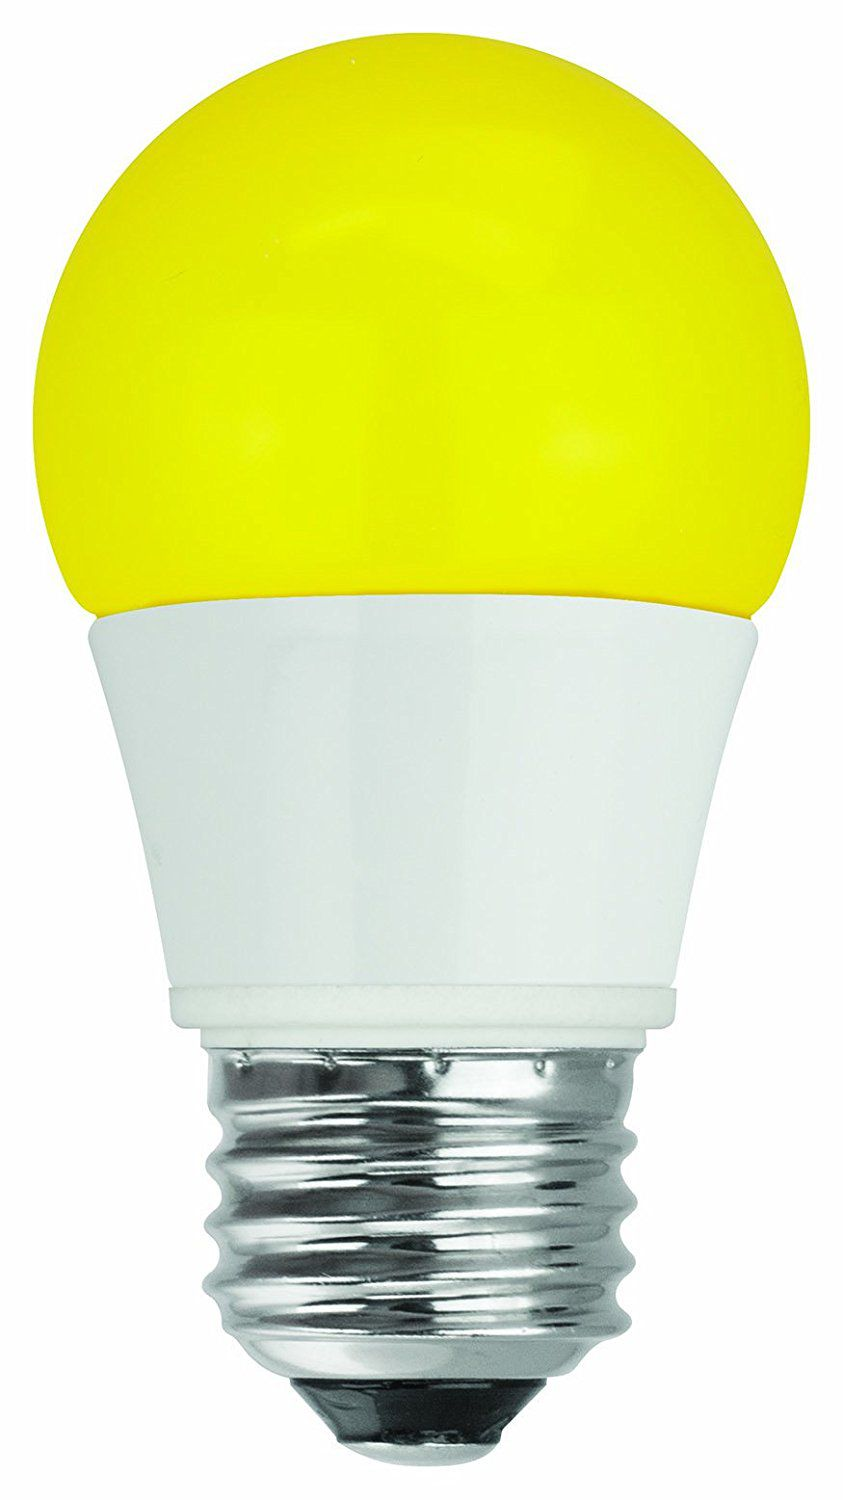 The 7 best outdoor light bulbs to buy in 2018 best overall lux led energy efficient light bulbs 6 pack workwithnaturefo